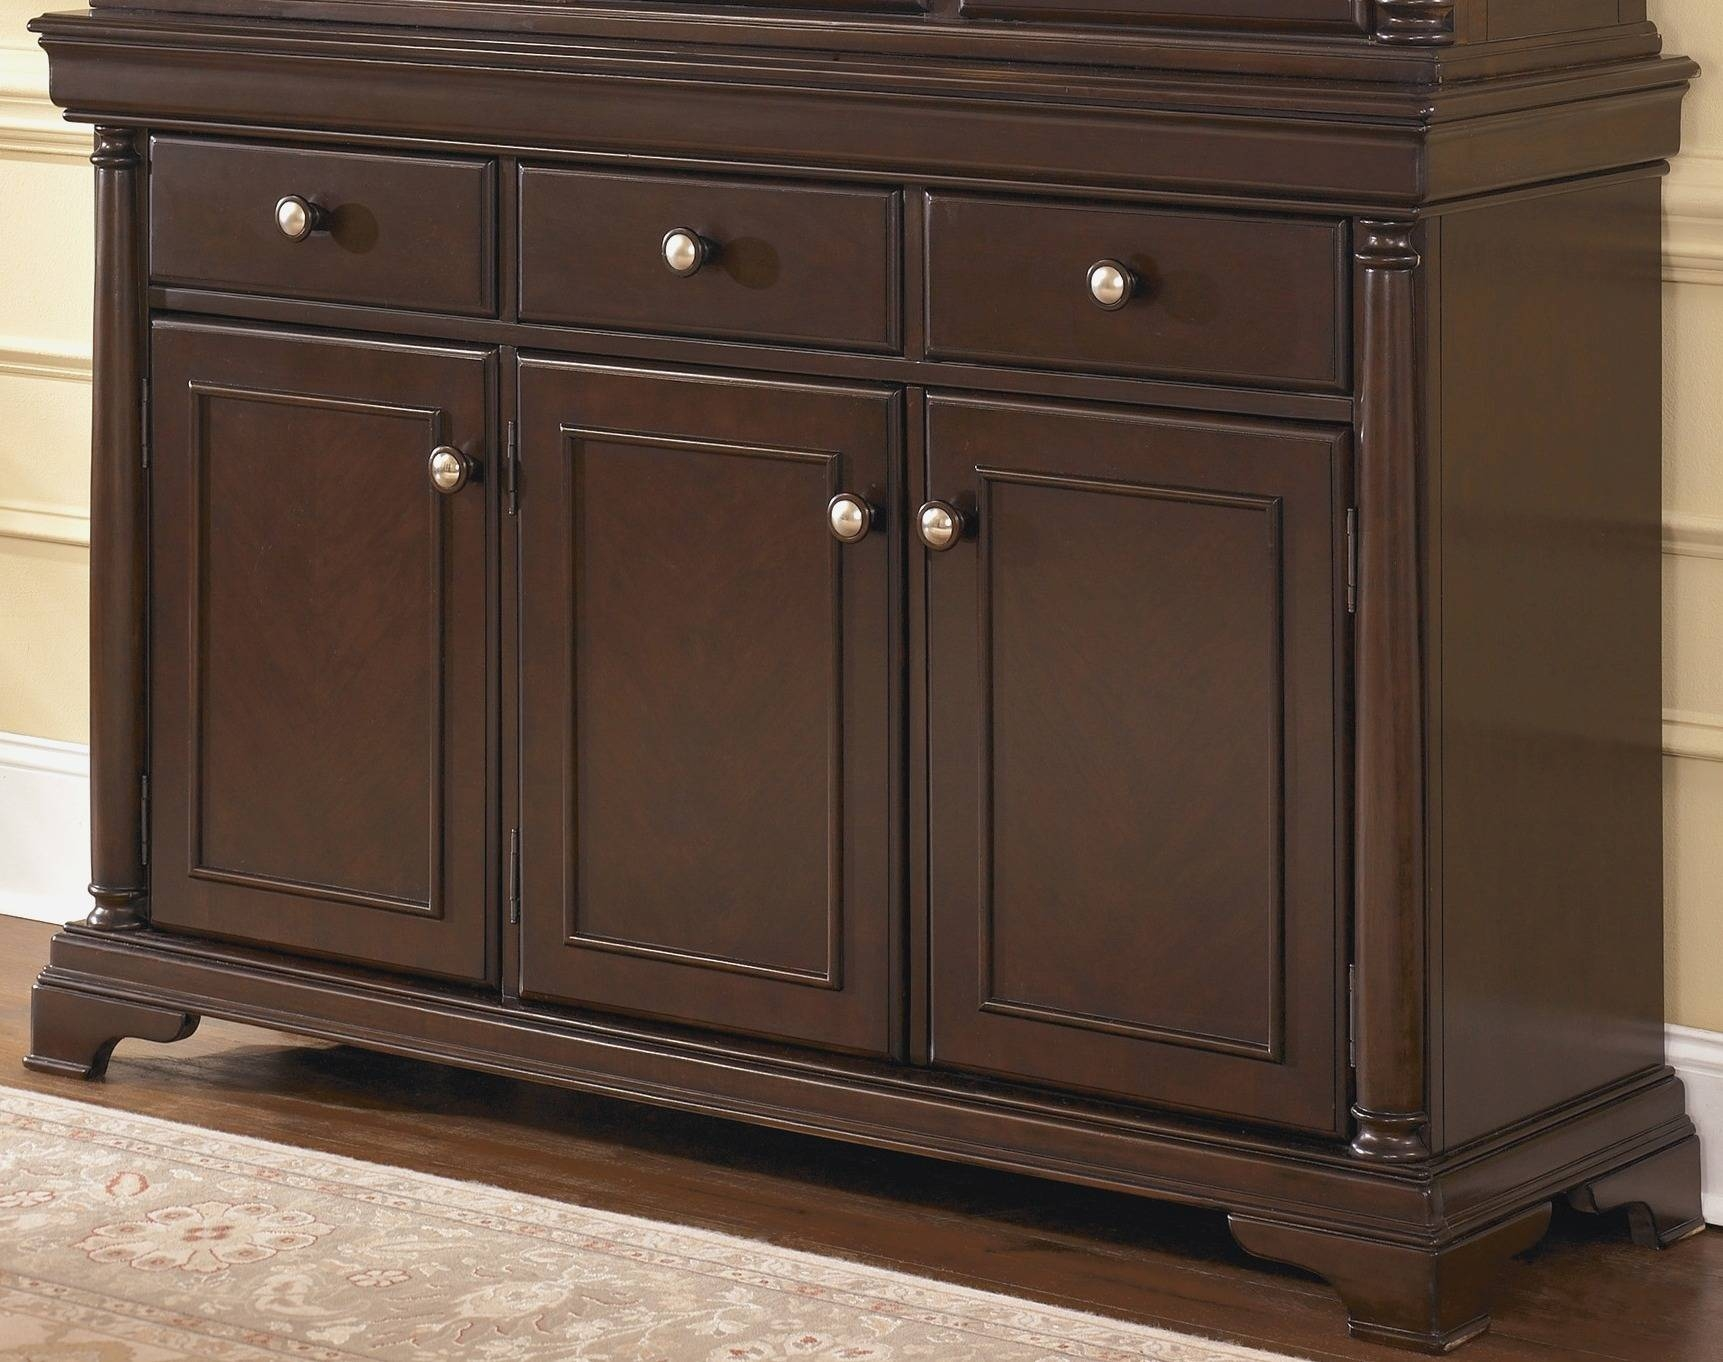 Farmhouse Sideboards And Buffets: Farmhouse Sideboards And Buffets Pertaining To Elegant Sideboards (View 10 of 15)